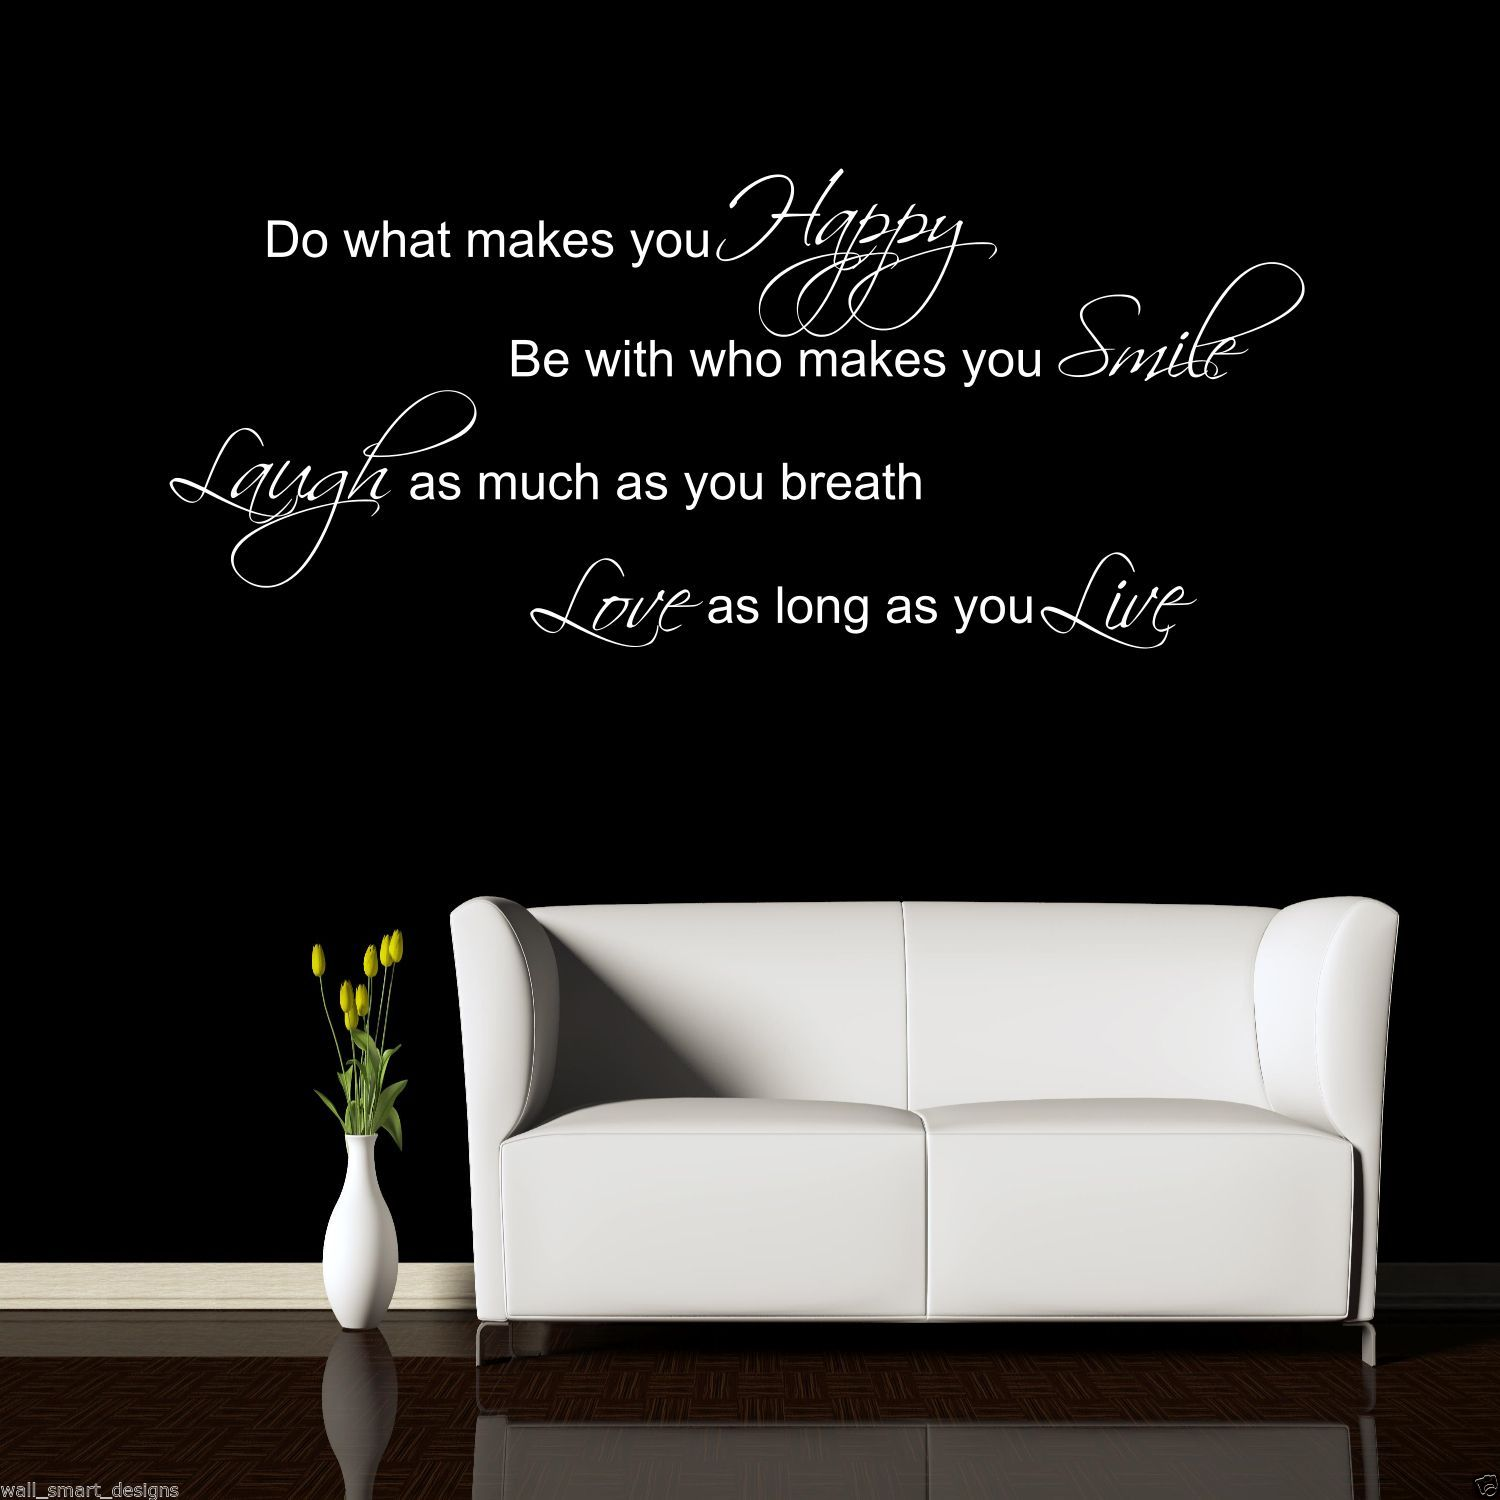 Smile Laugh Love Quotes Laugh Smile Love Live Wall Sticker Quote Decal Mural Stencil